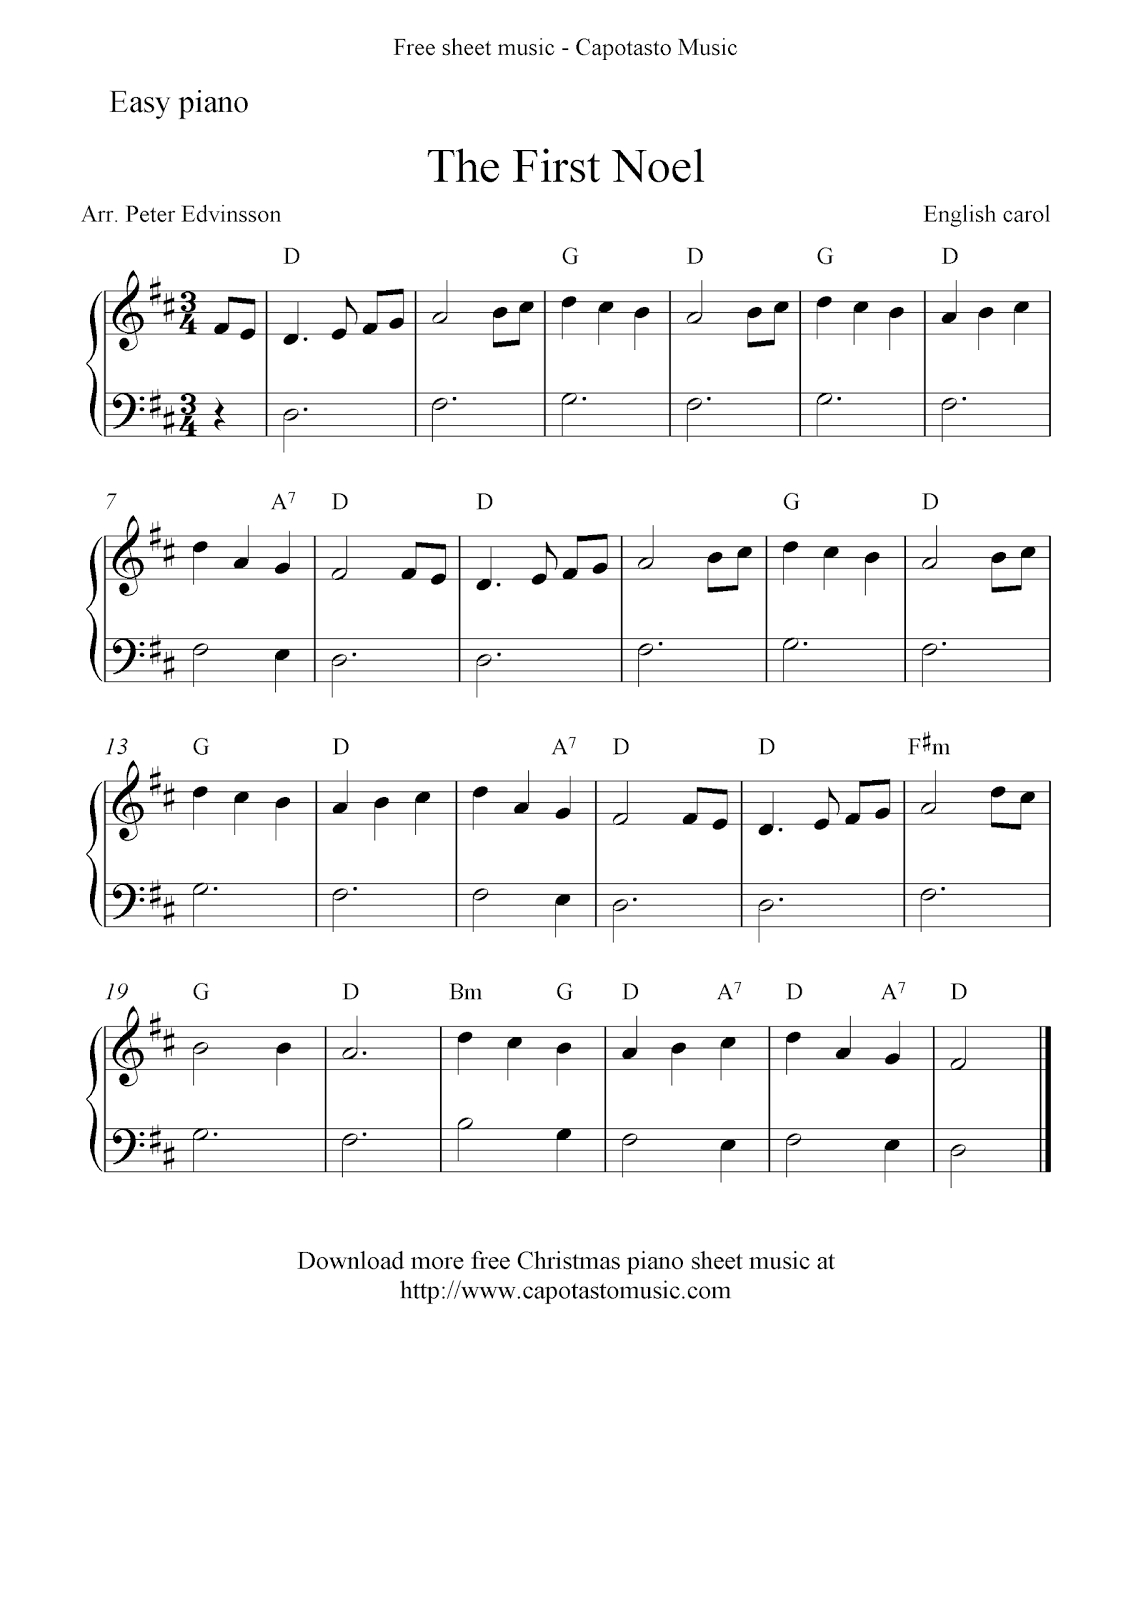 Easy Free Christmas Sheet Music For Piano, The First Noel - Free Printable Christmas Music Sheets Piano